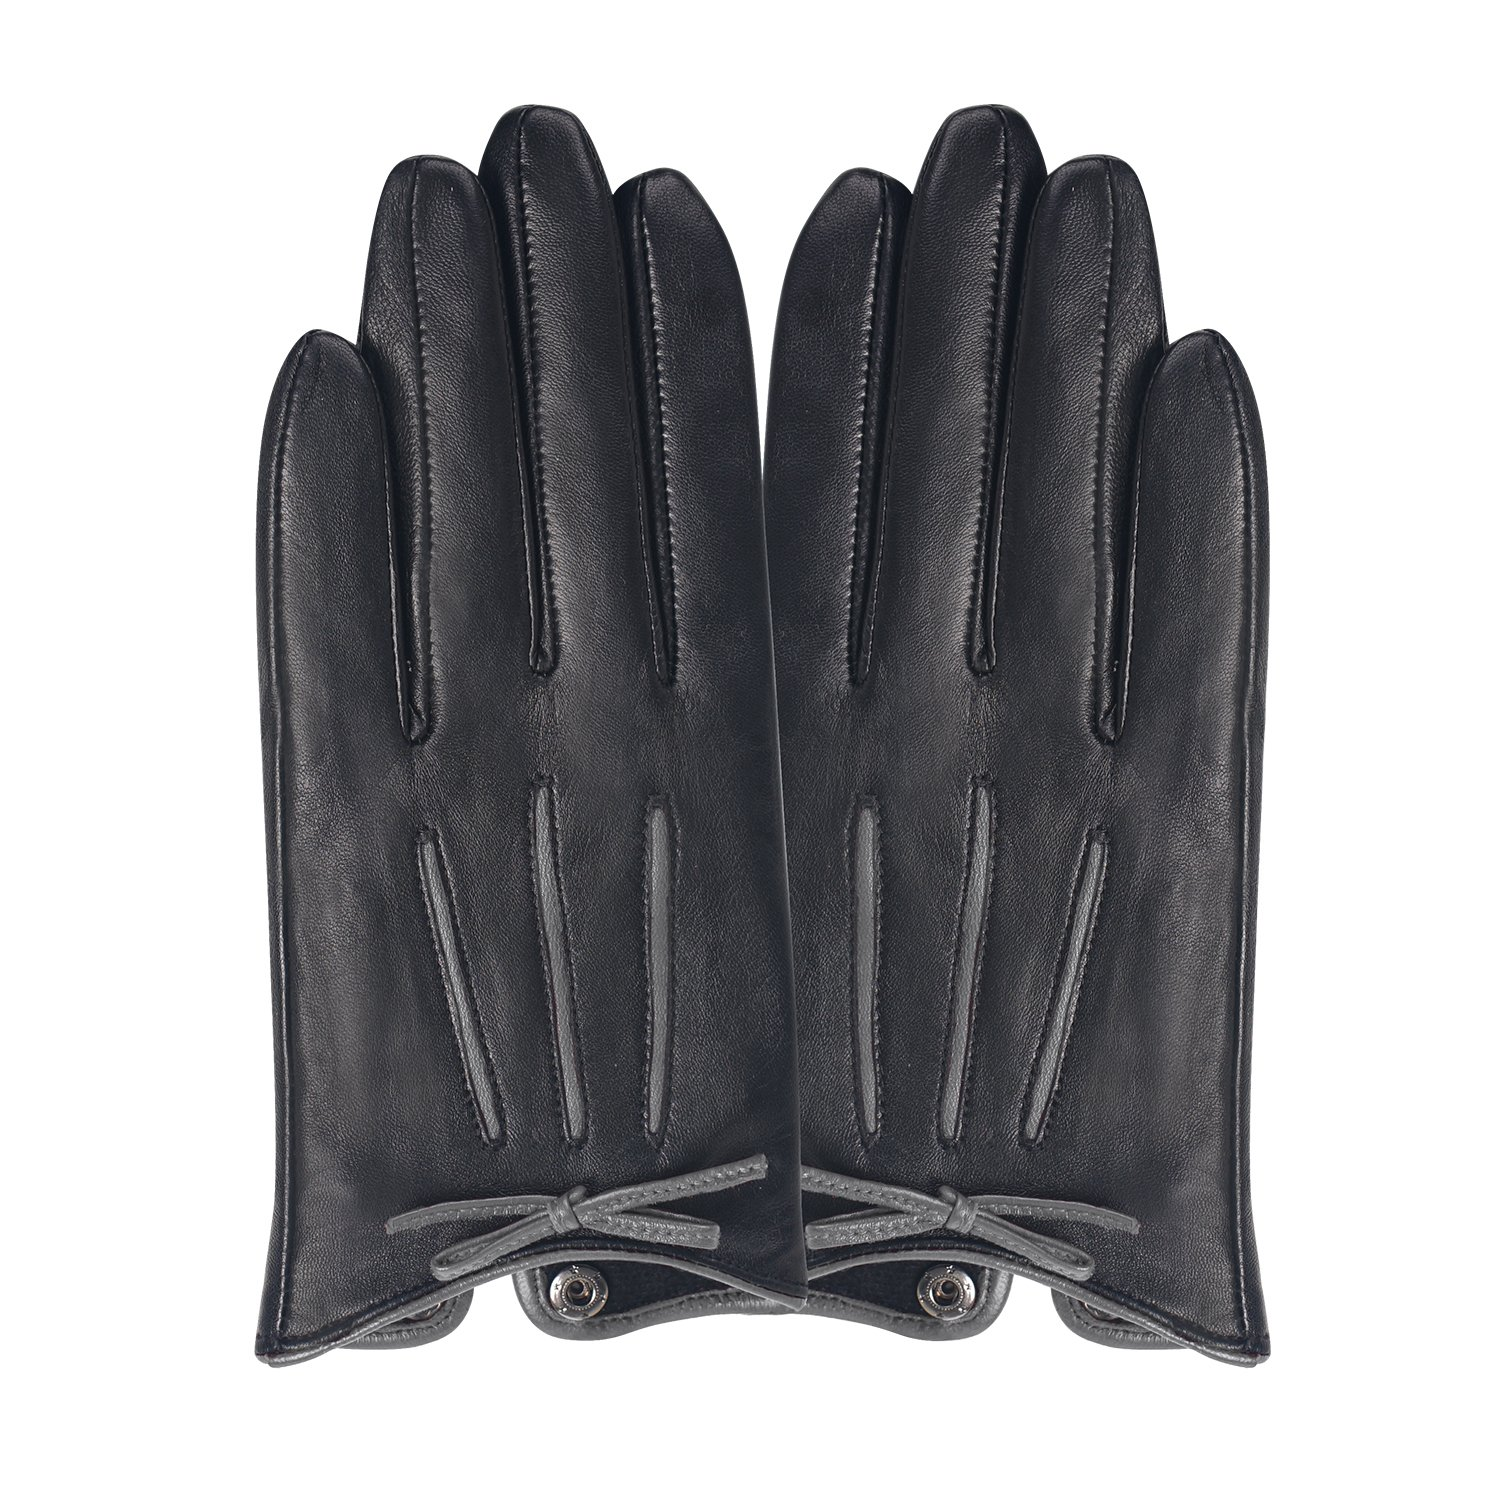 GSG Womens Feminine Colorblock Bow Touchscreen Driving Gloves Ladies Genuine Leather Warm Outdoor Gloves Winter Nice Gifts Black 7 by GSG (Image #3)